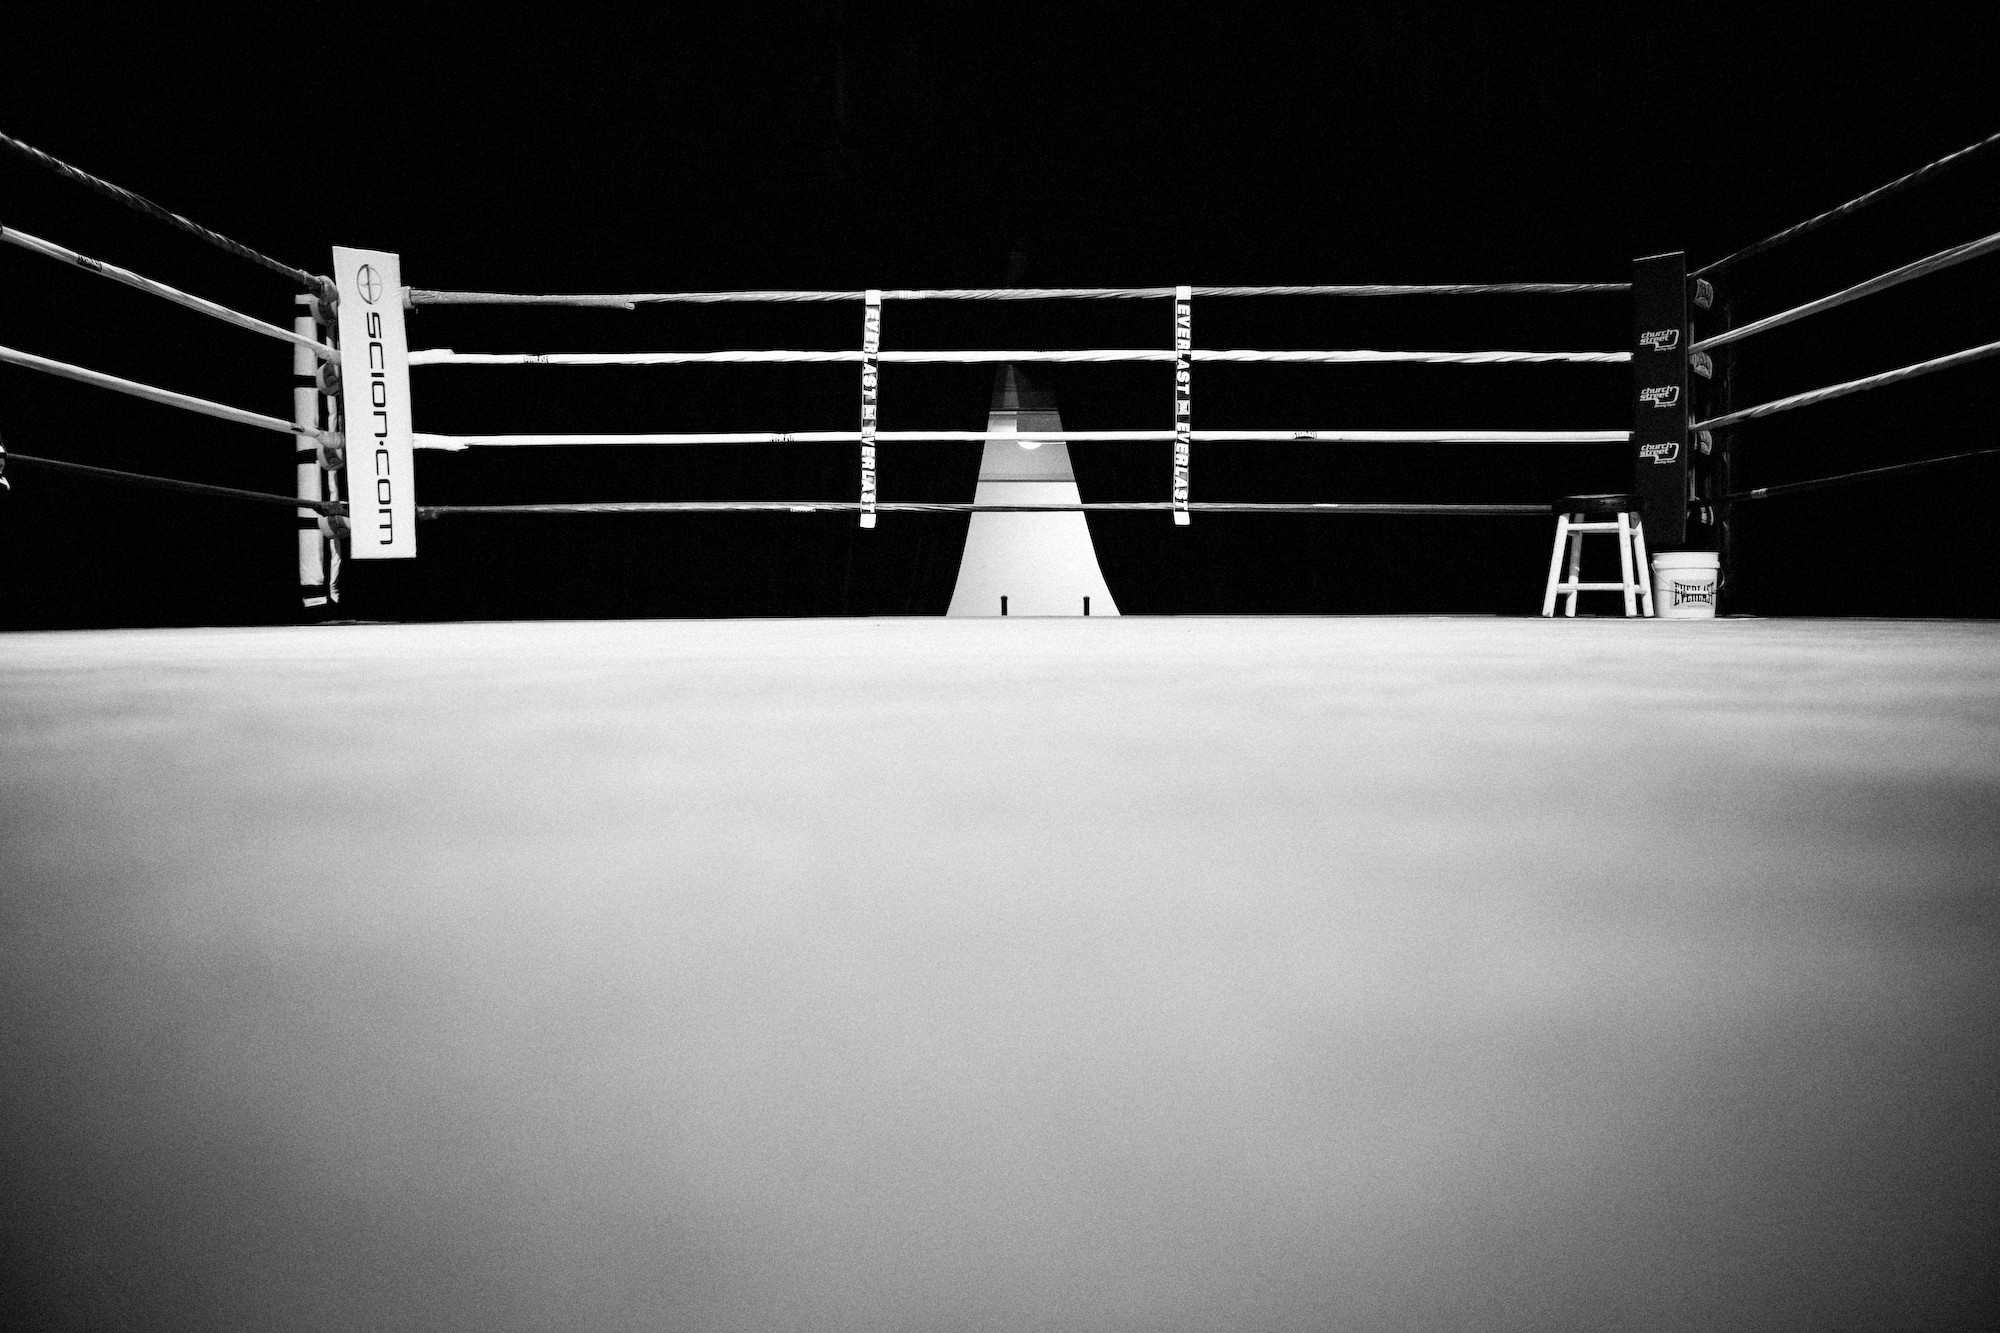 Fighting Ring Background